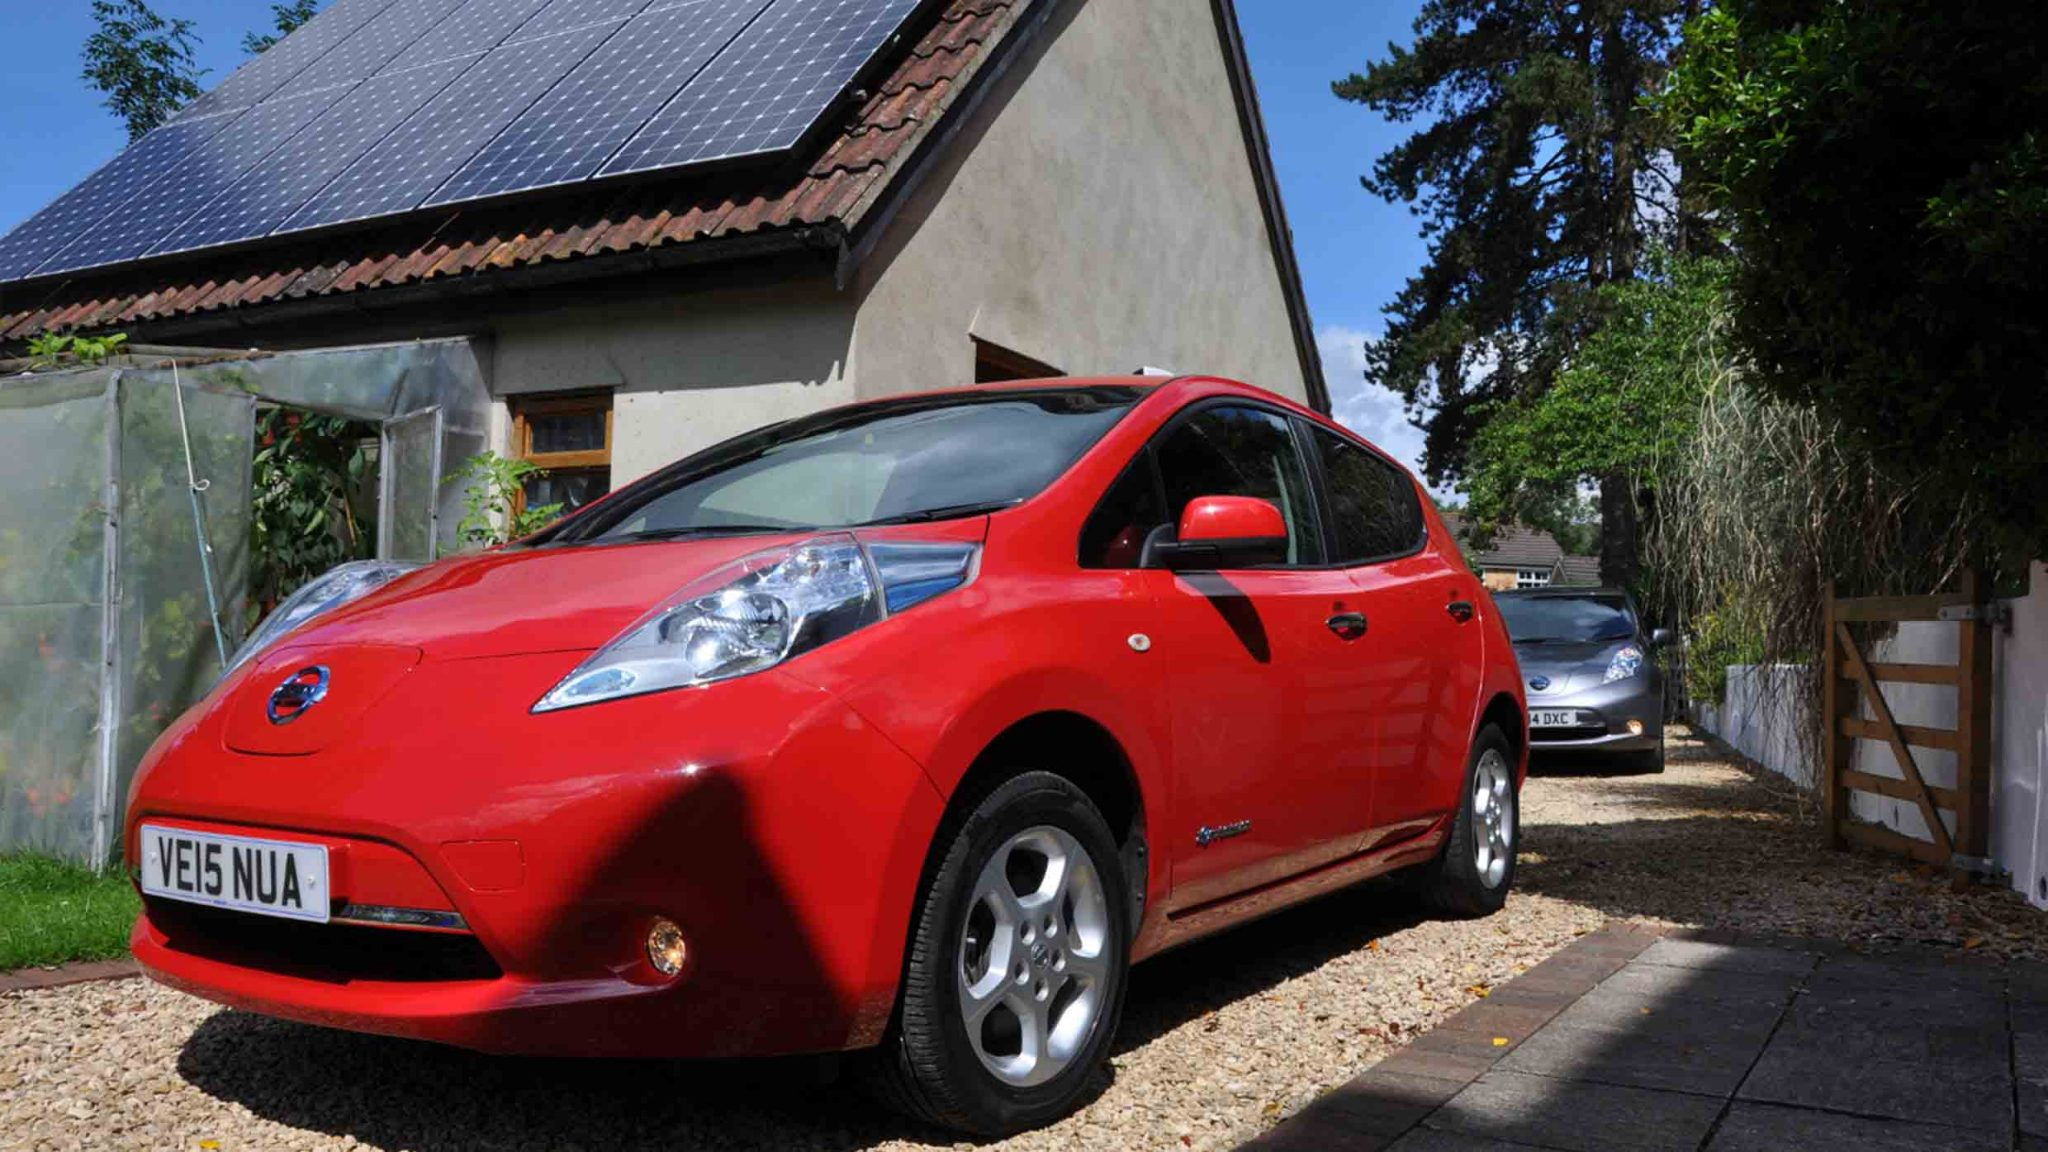 Solar Panels and Electric Vehicle